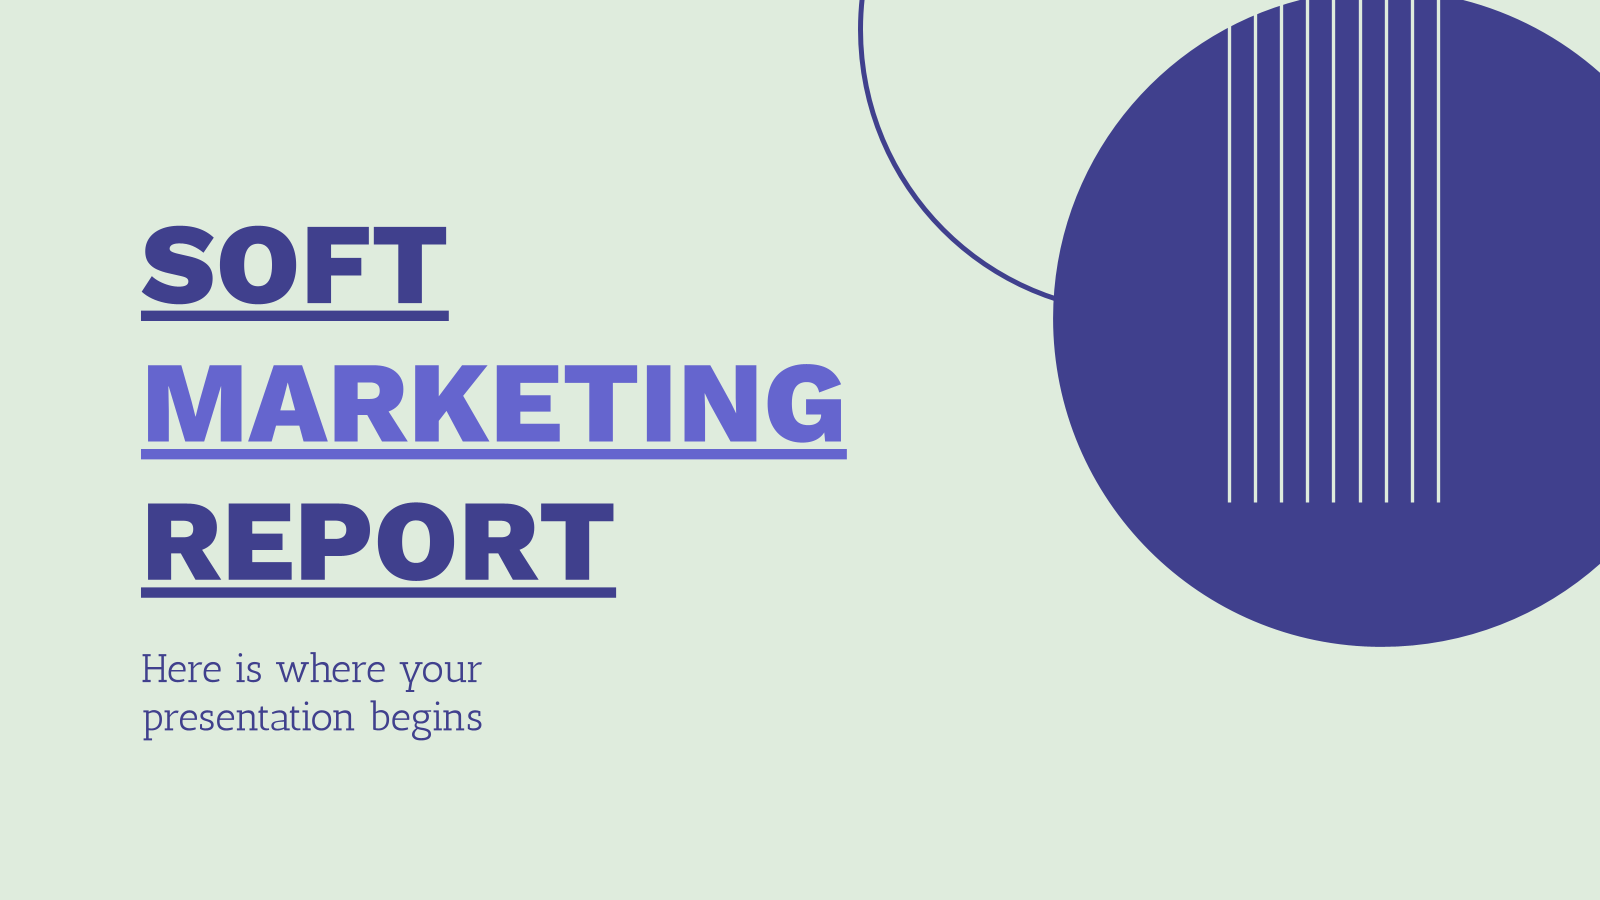 Soft Marketing Report presentation template